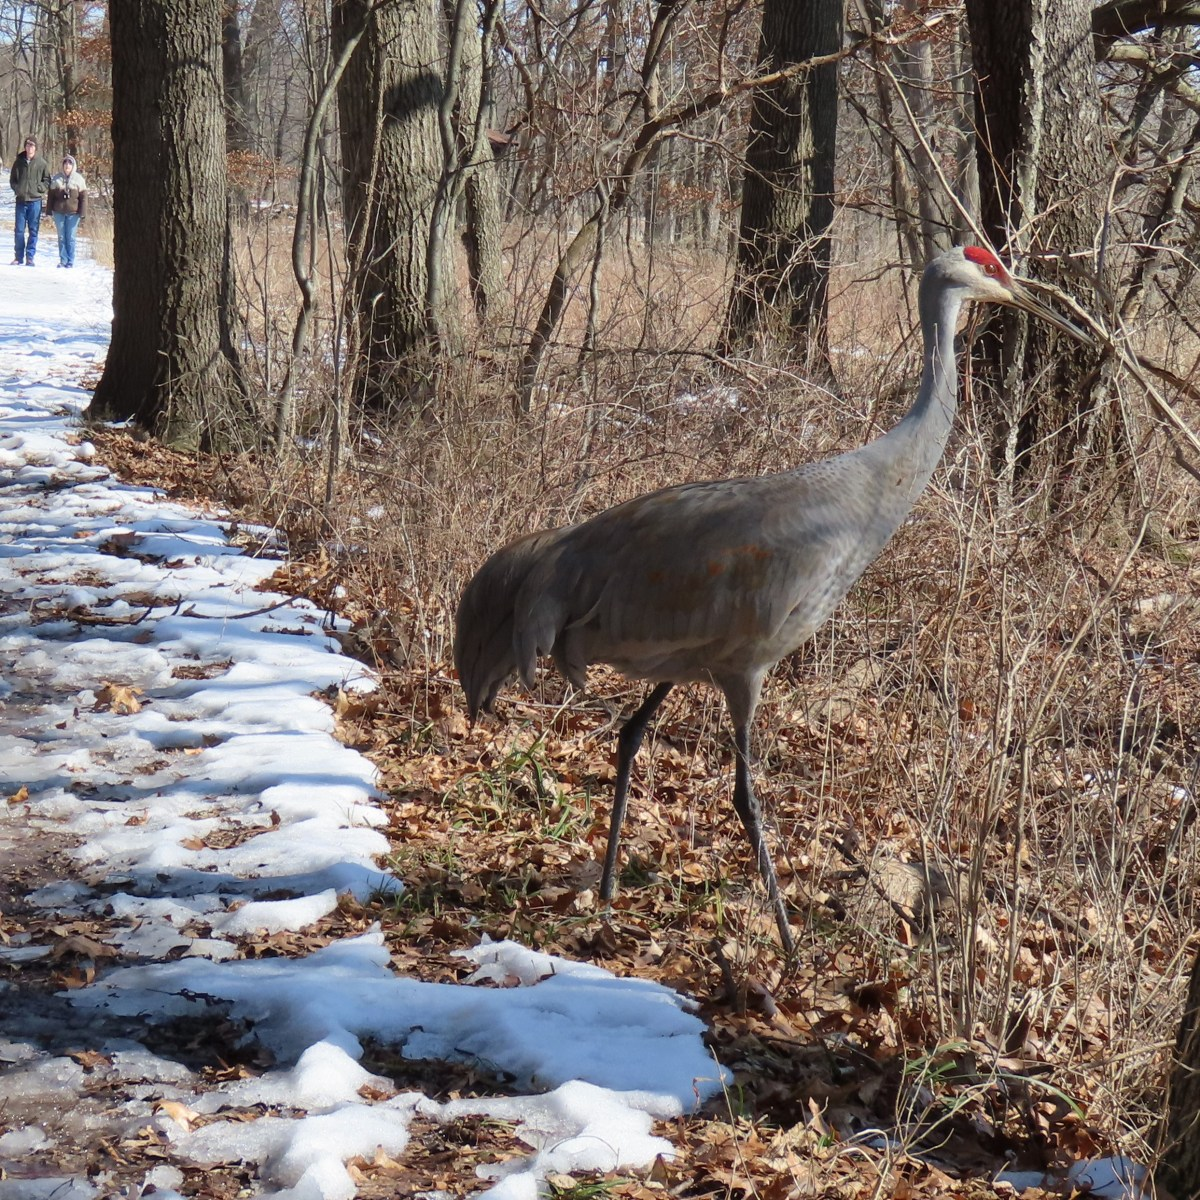 A Sandhill Crane walks across a snowy trail while four people watch from a distance